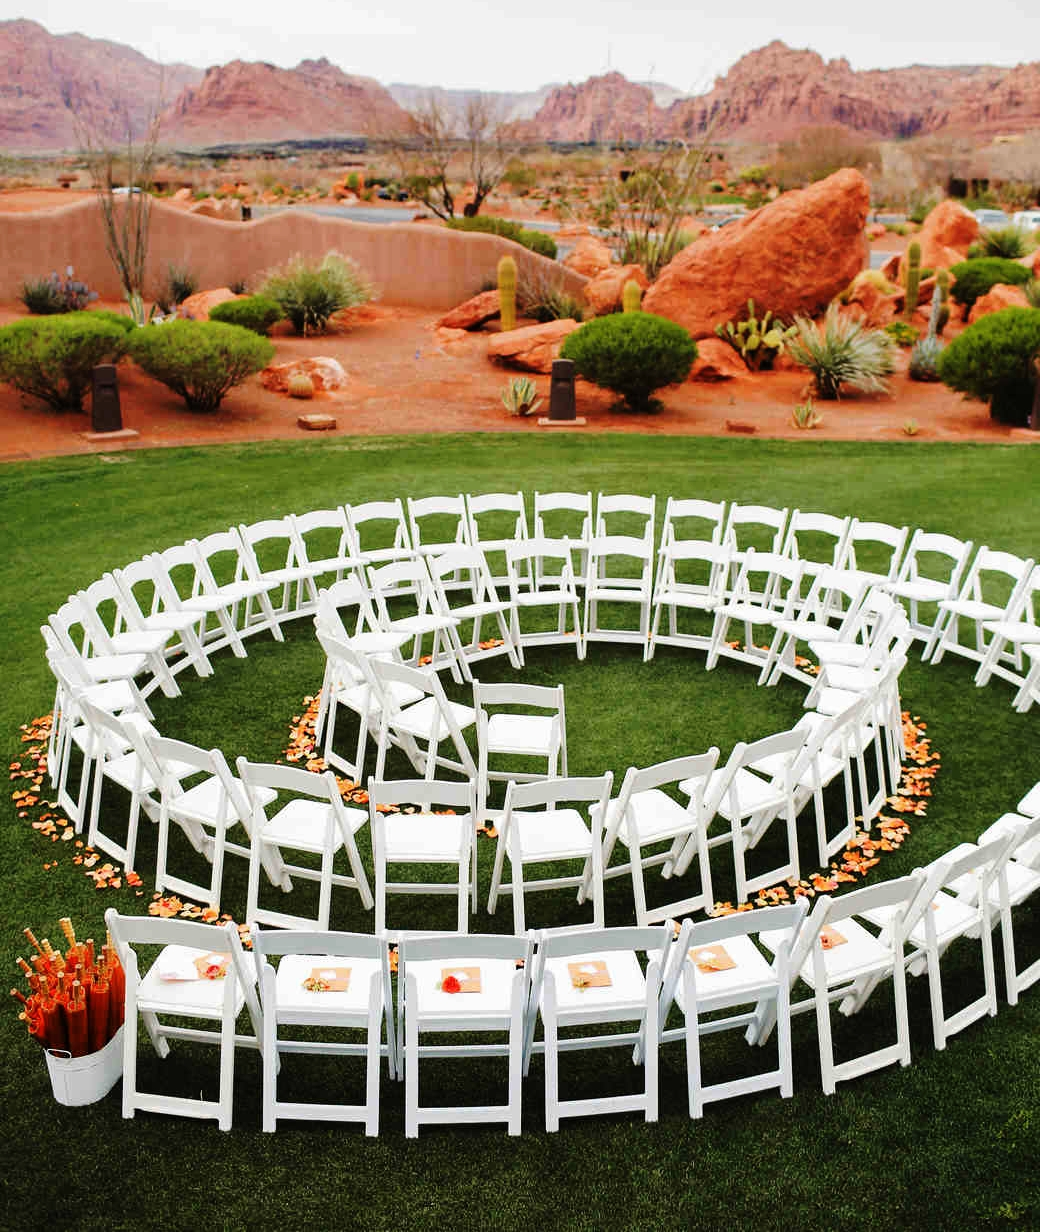 Unique swirl-shaped ceremony seating for an intimate wedding ceremony where the bride and groom must walk past every guest.